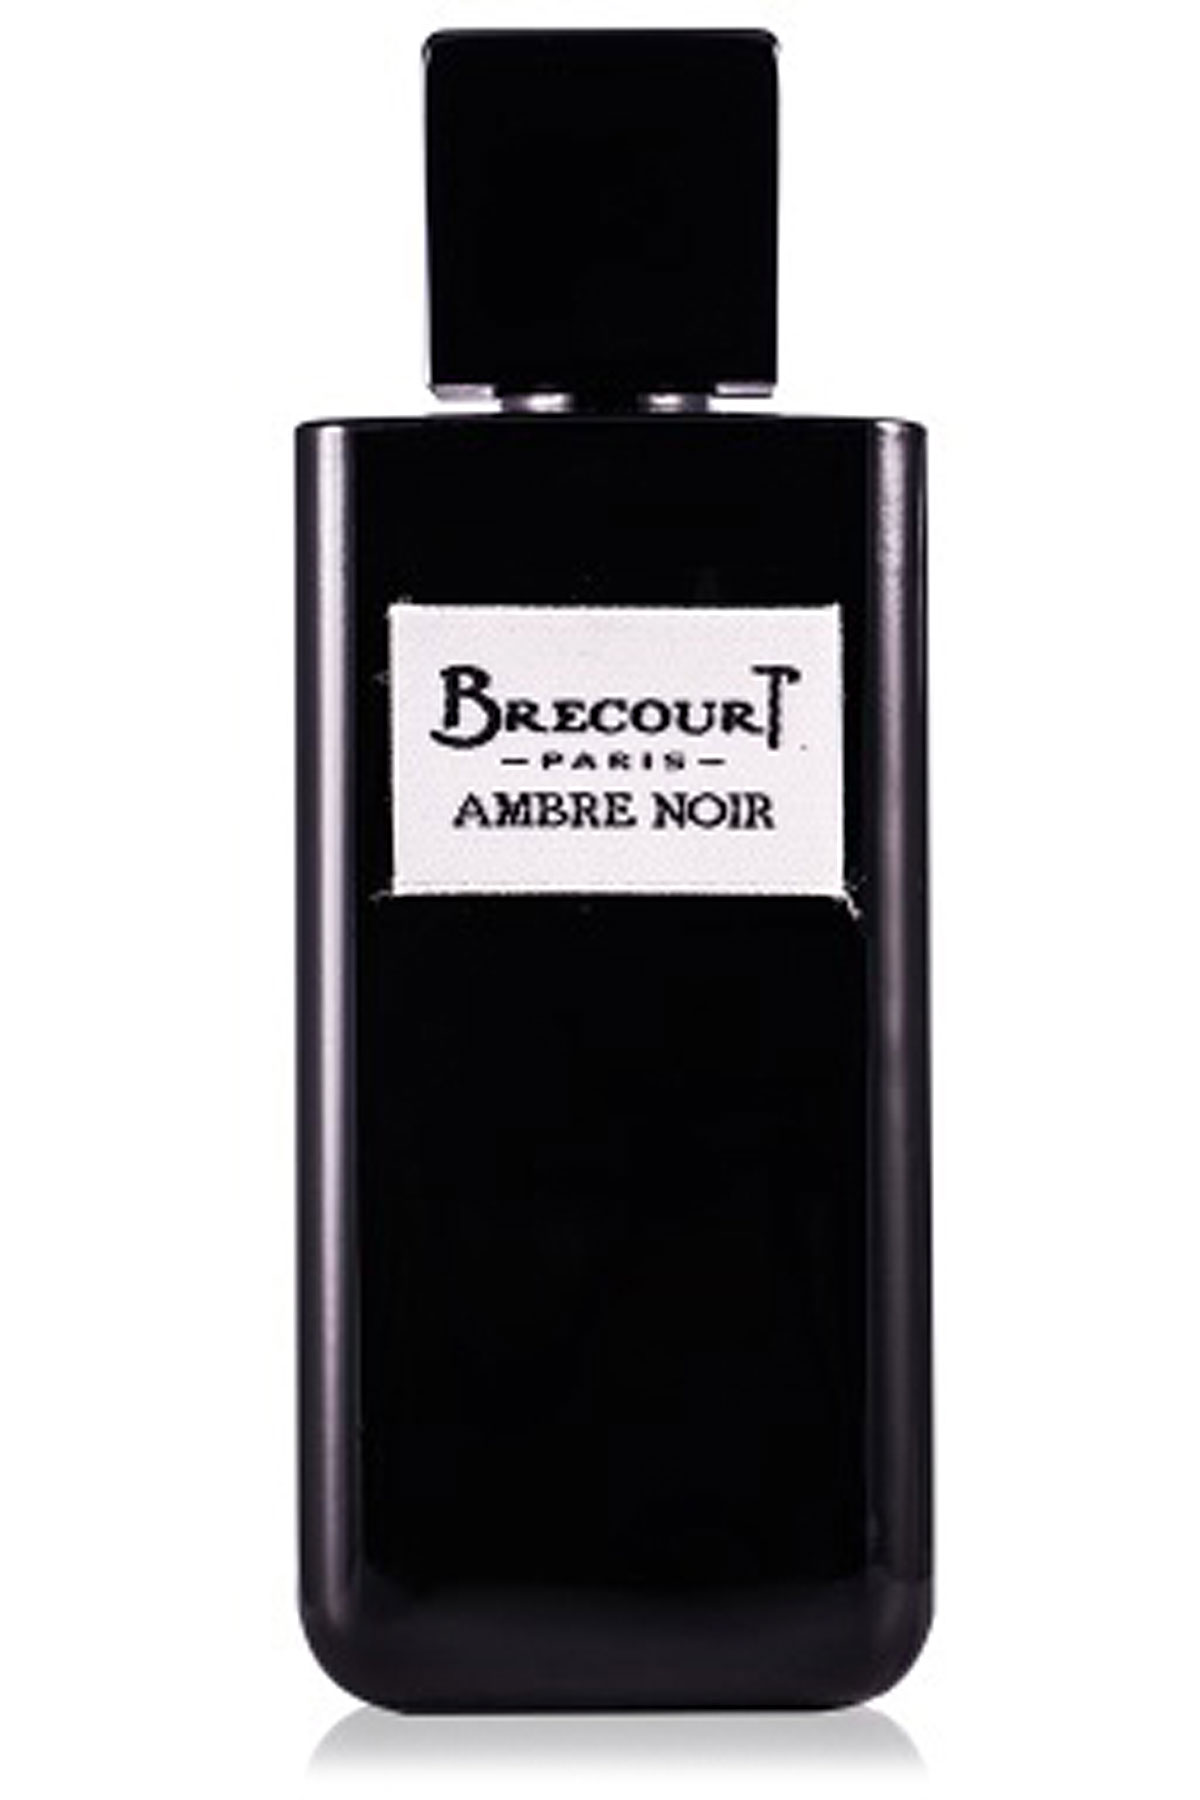 Brecourt Fragrances for Women, Ambre Noir - Eau De Parfum - 100 Ml, 2019, 100 ml